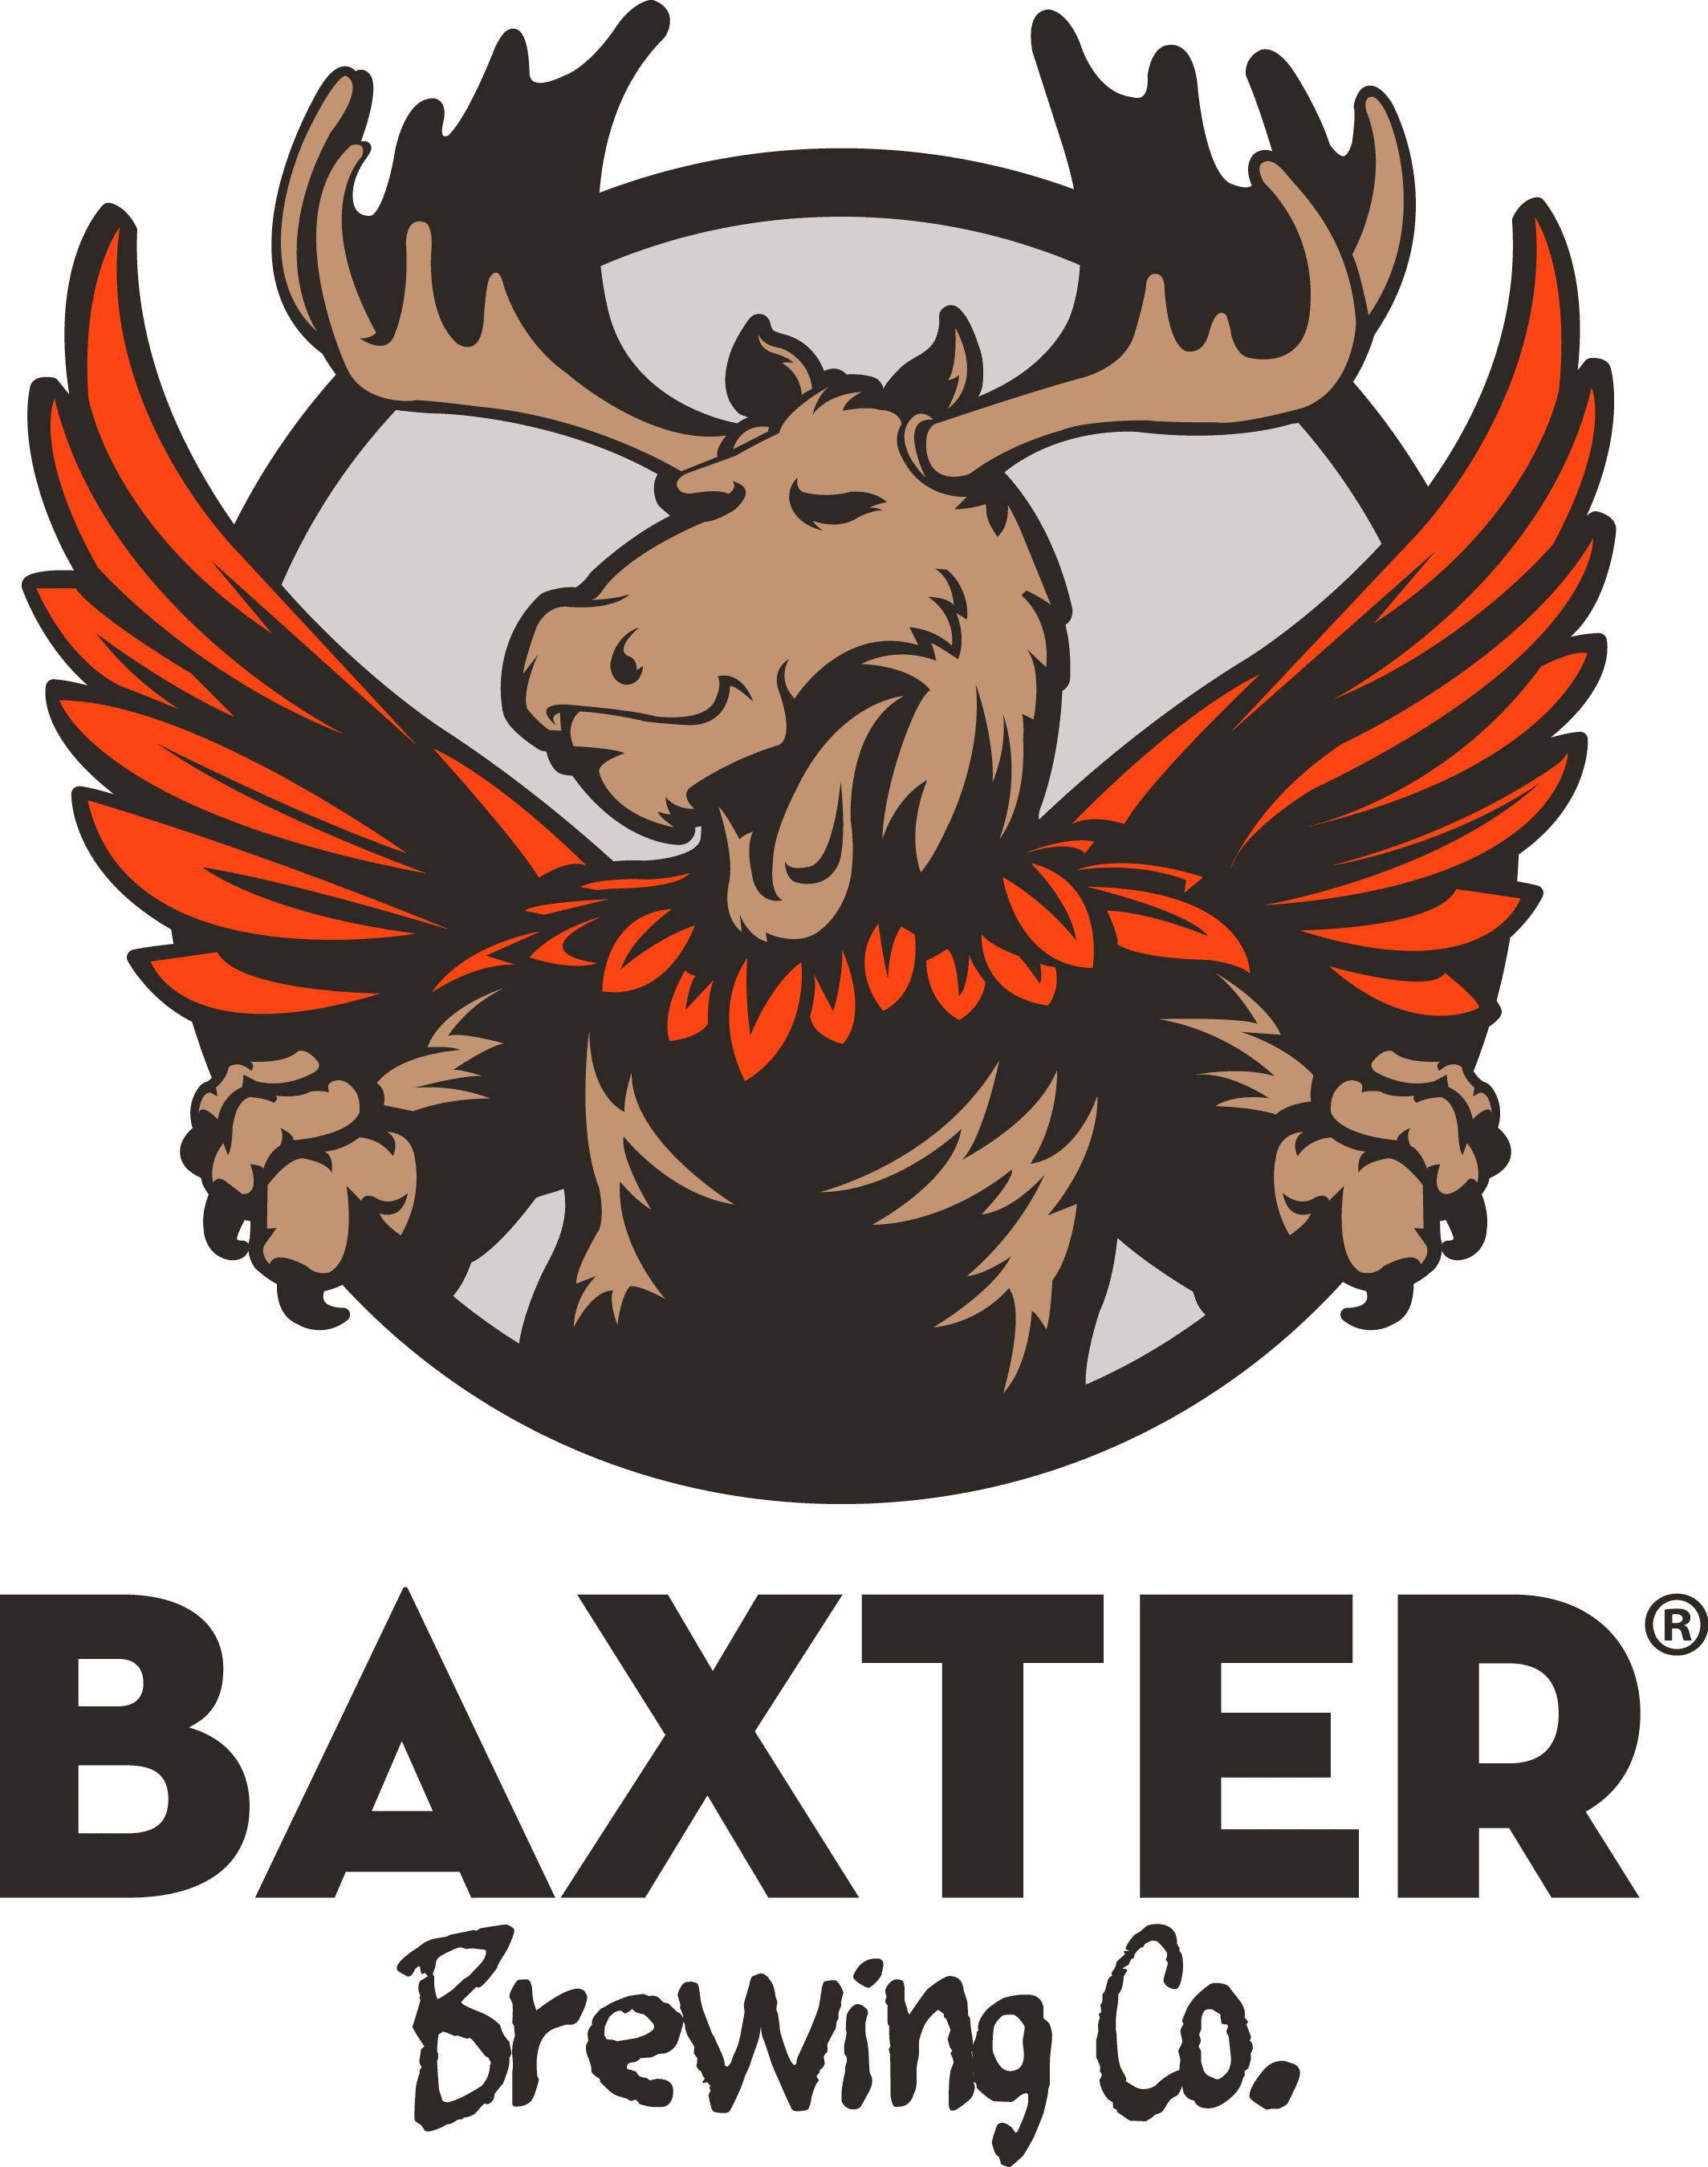 Baxter Brewing Co.